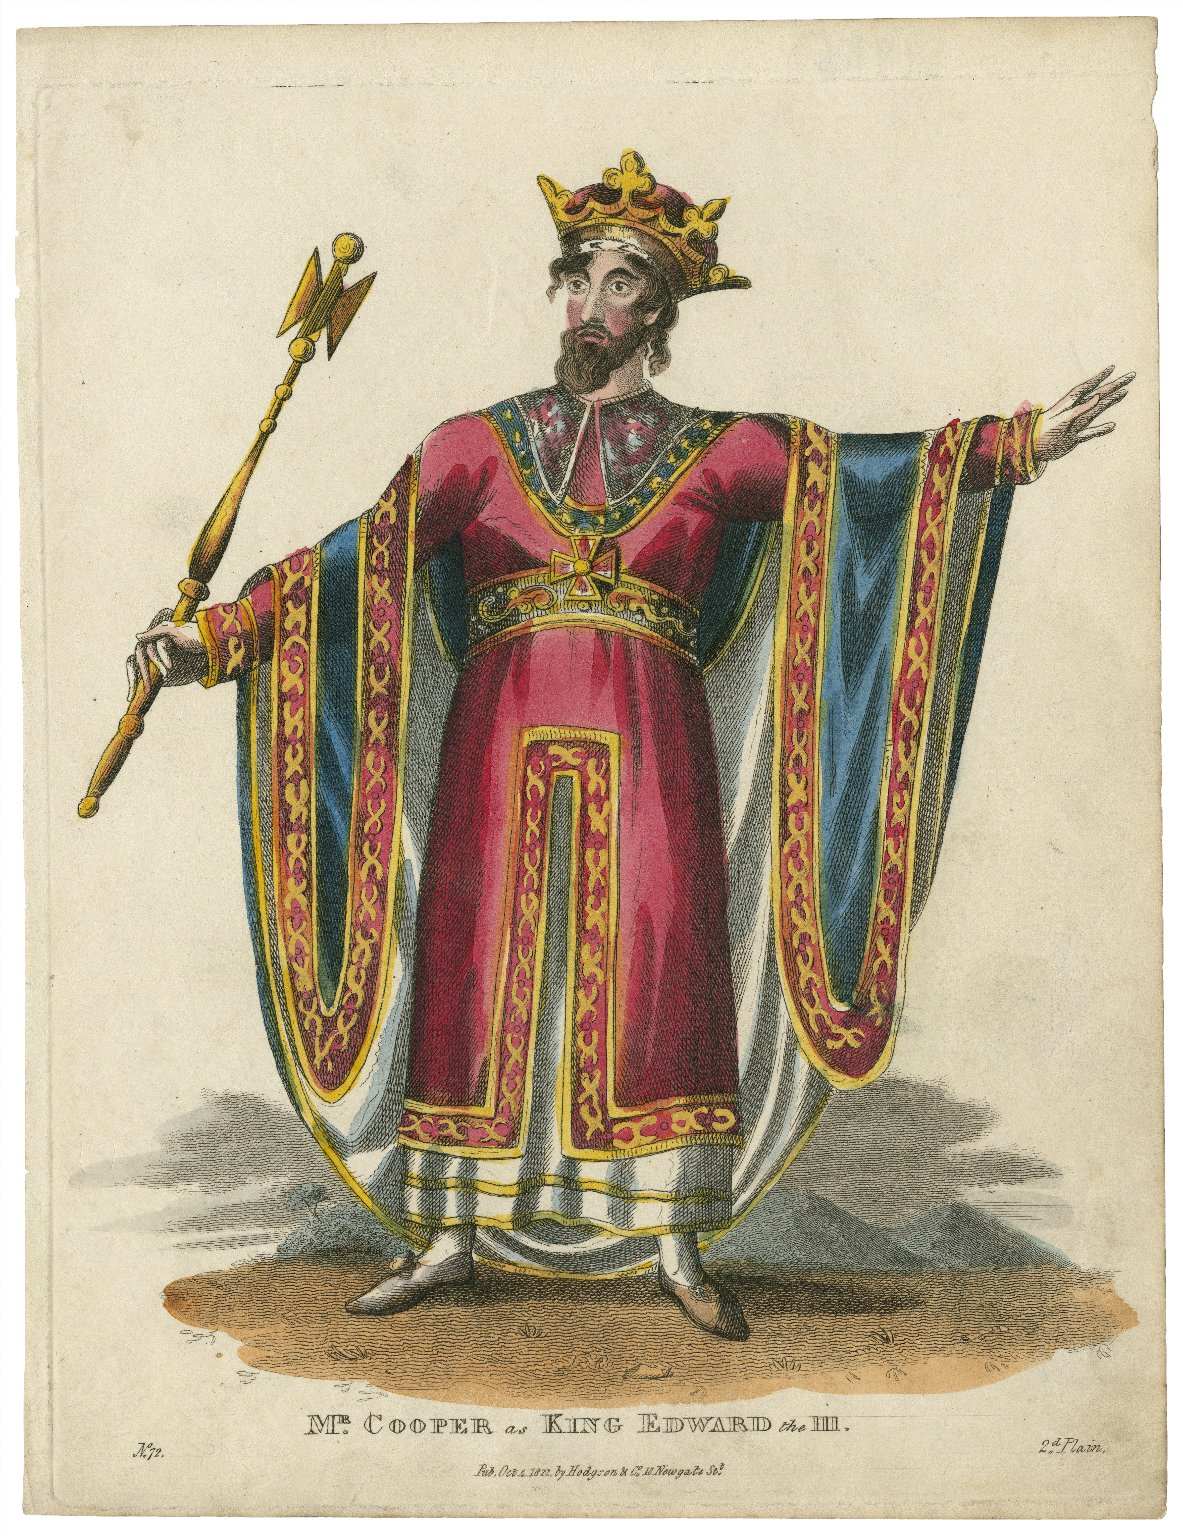 Mr. Cooper as King Edward the III [graphic].